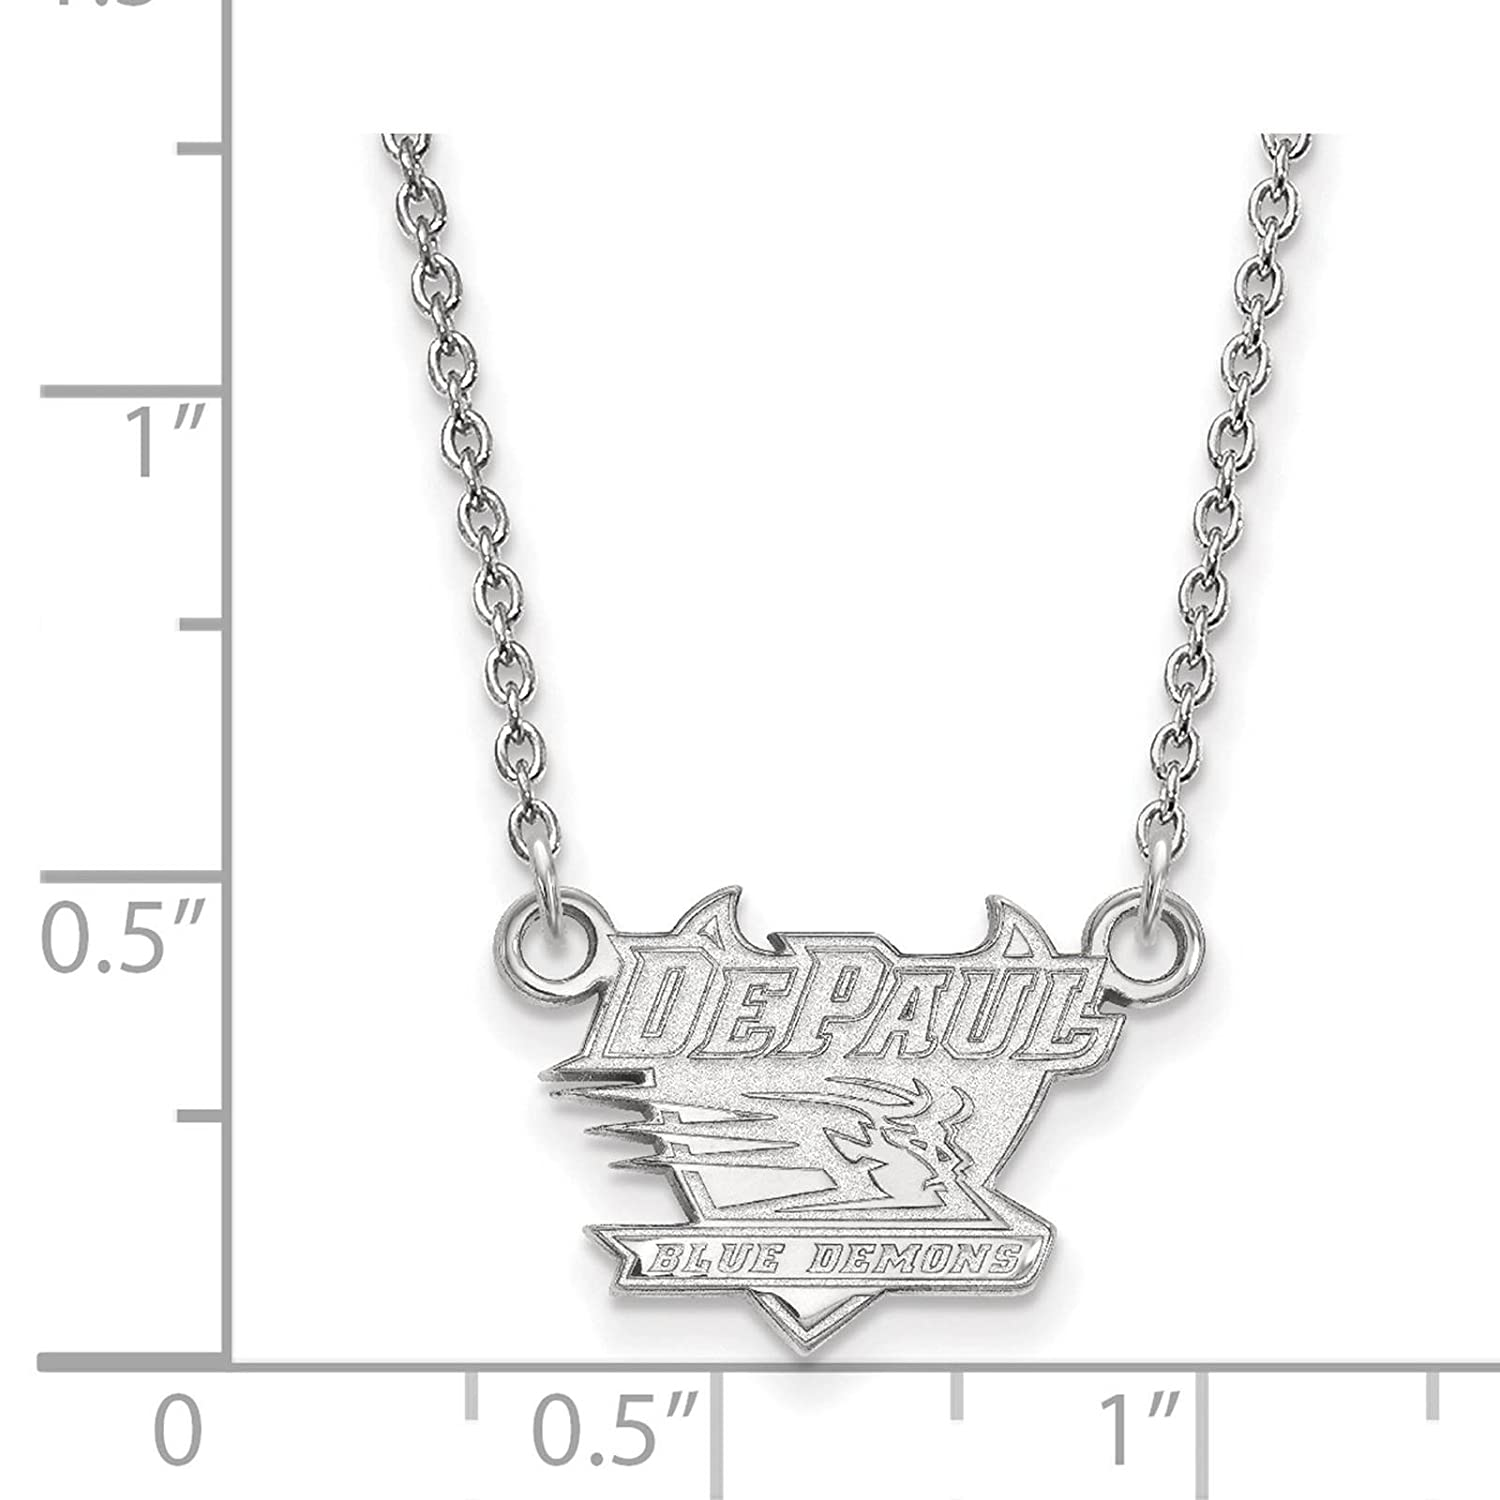 925 Sterling Silver Rhodium-plated Laser-cut DePaul University Small Pendant w//Necklace 18